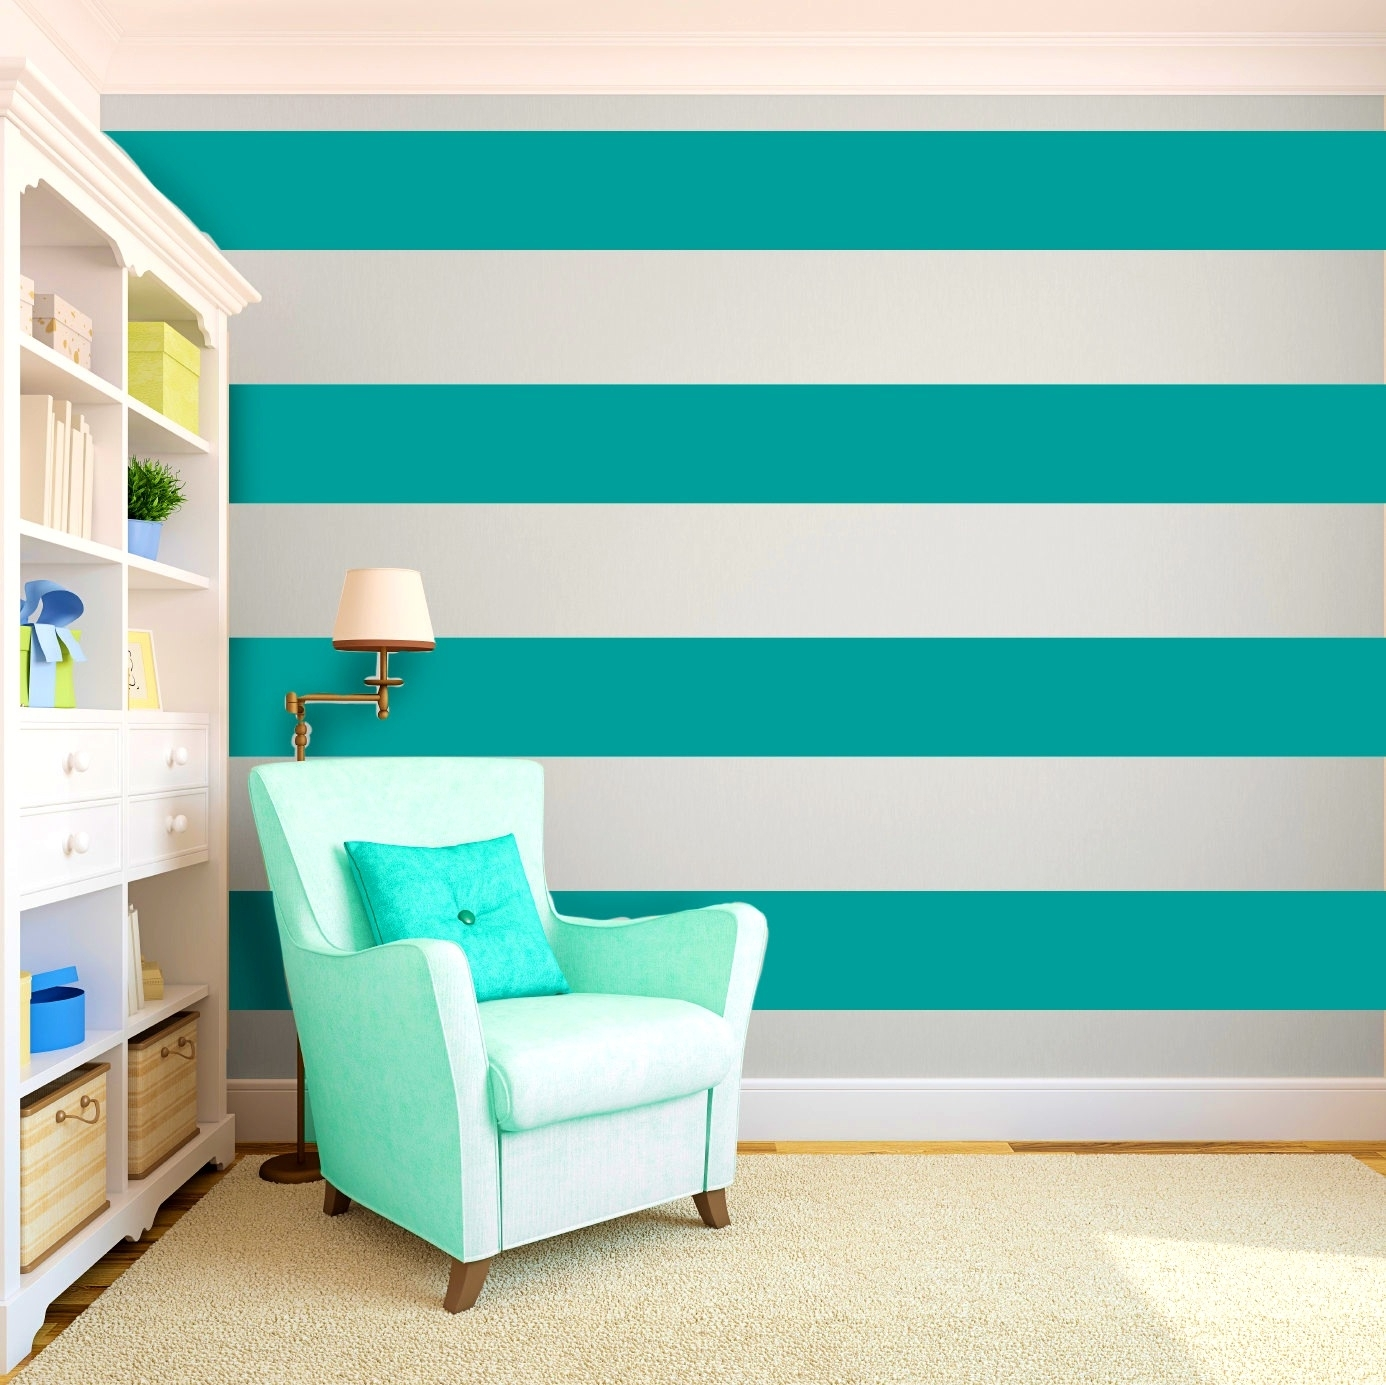 Bathroomappealing Cool Painting Ideas That Turn Walls And Ceilings With 2017 Horizontal Stripes Wall Accents (View 8 of 15)